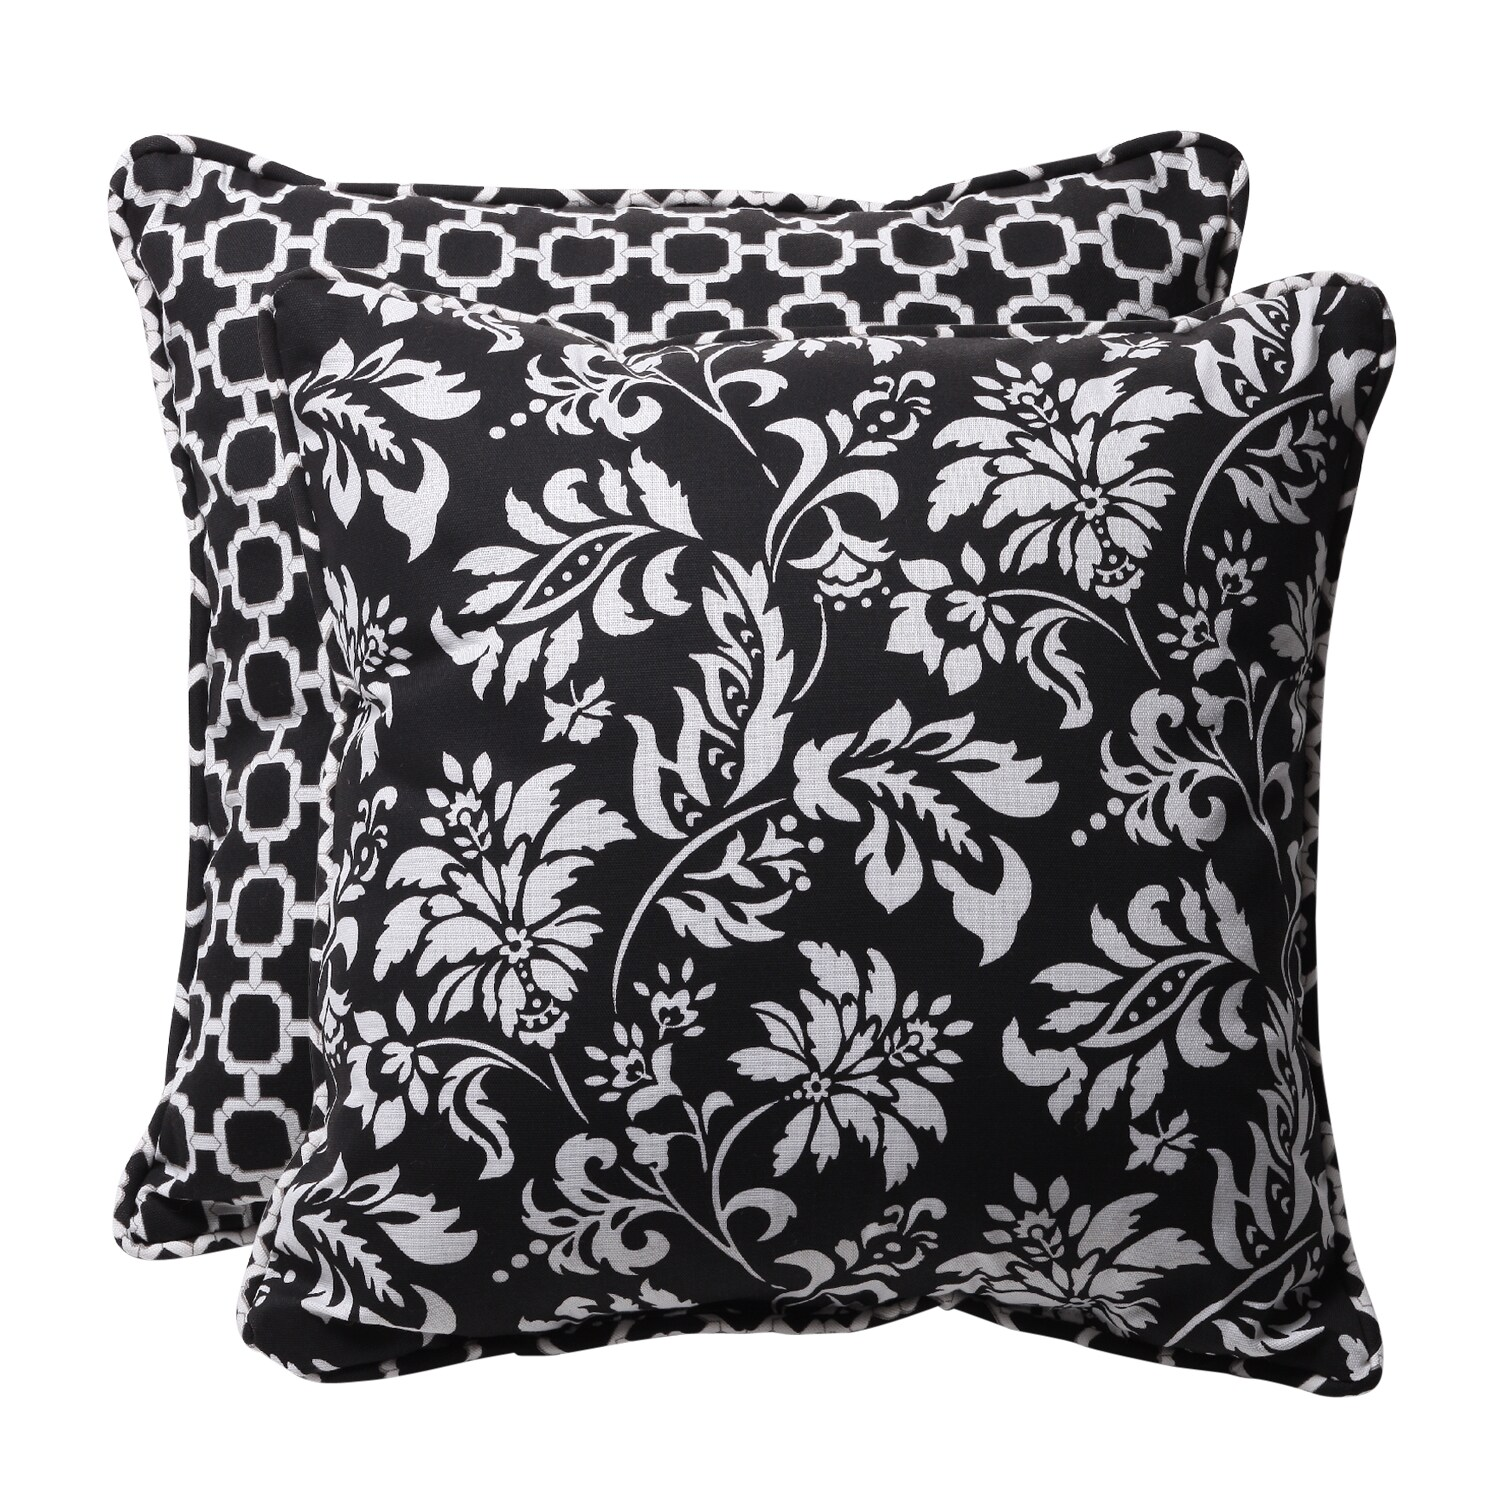 Decorative Black/ White Geometric/ Floral Square Reversible Outdoor Toss Pillows (Set of 2)